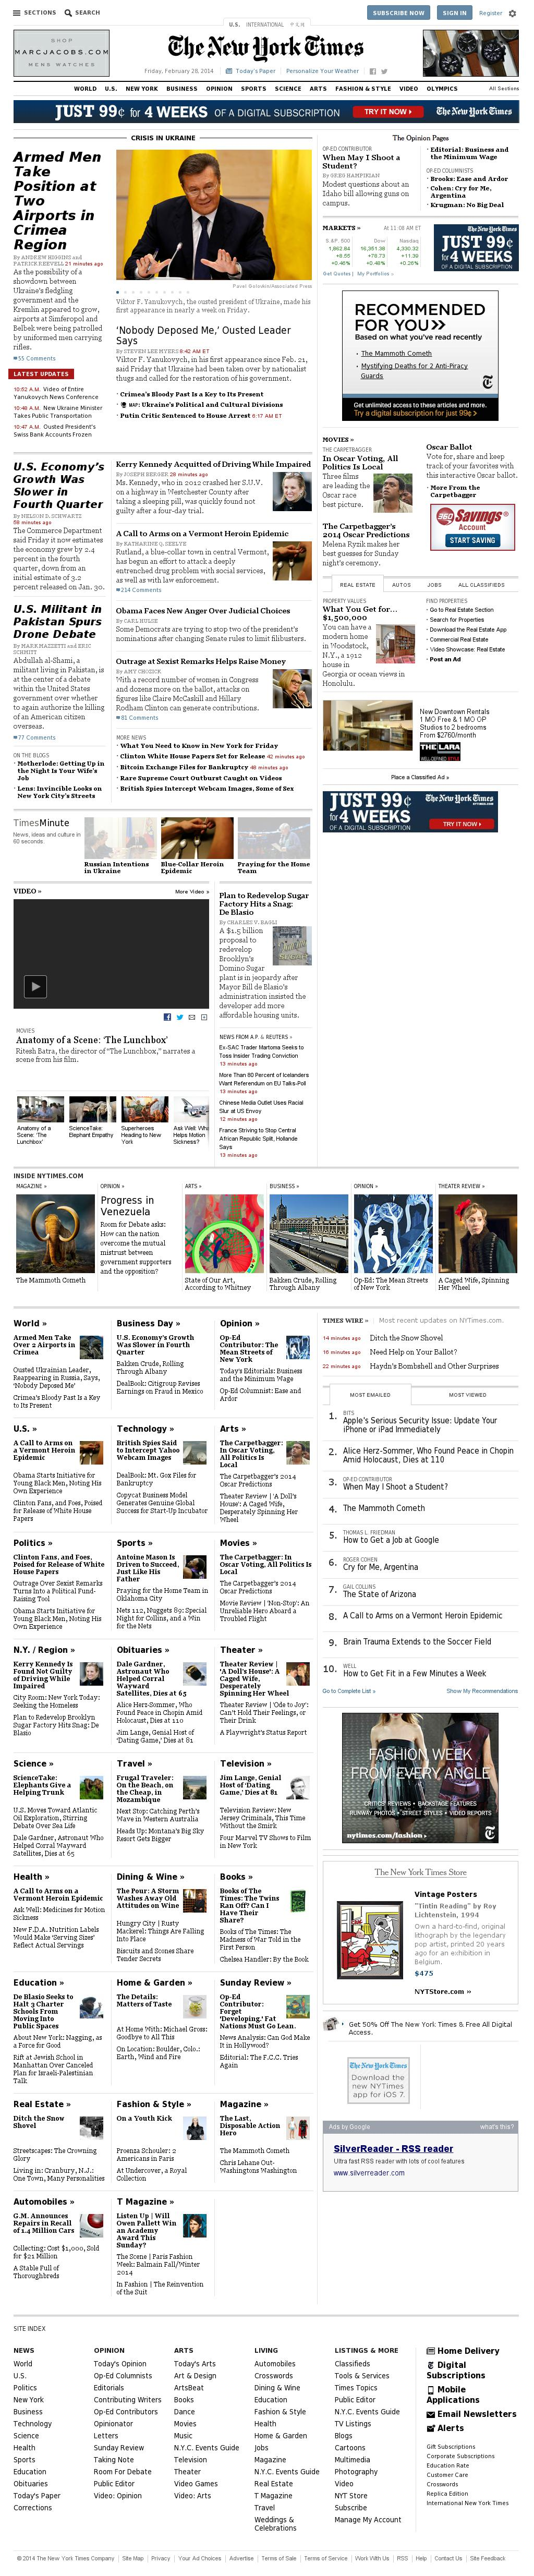 The New York Times at Friday Feb. 28, 2014, 4:12 p.m. UTC